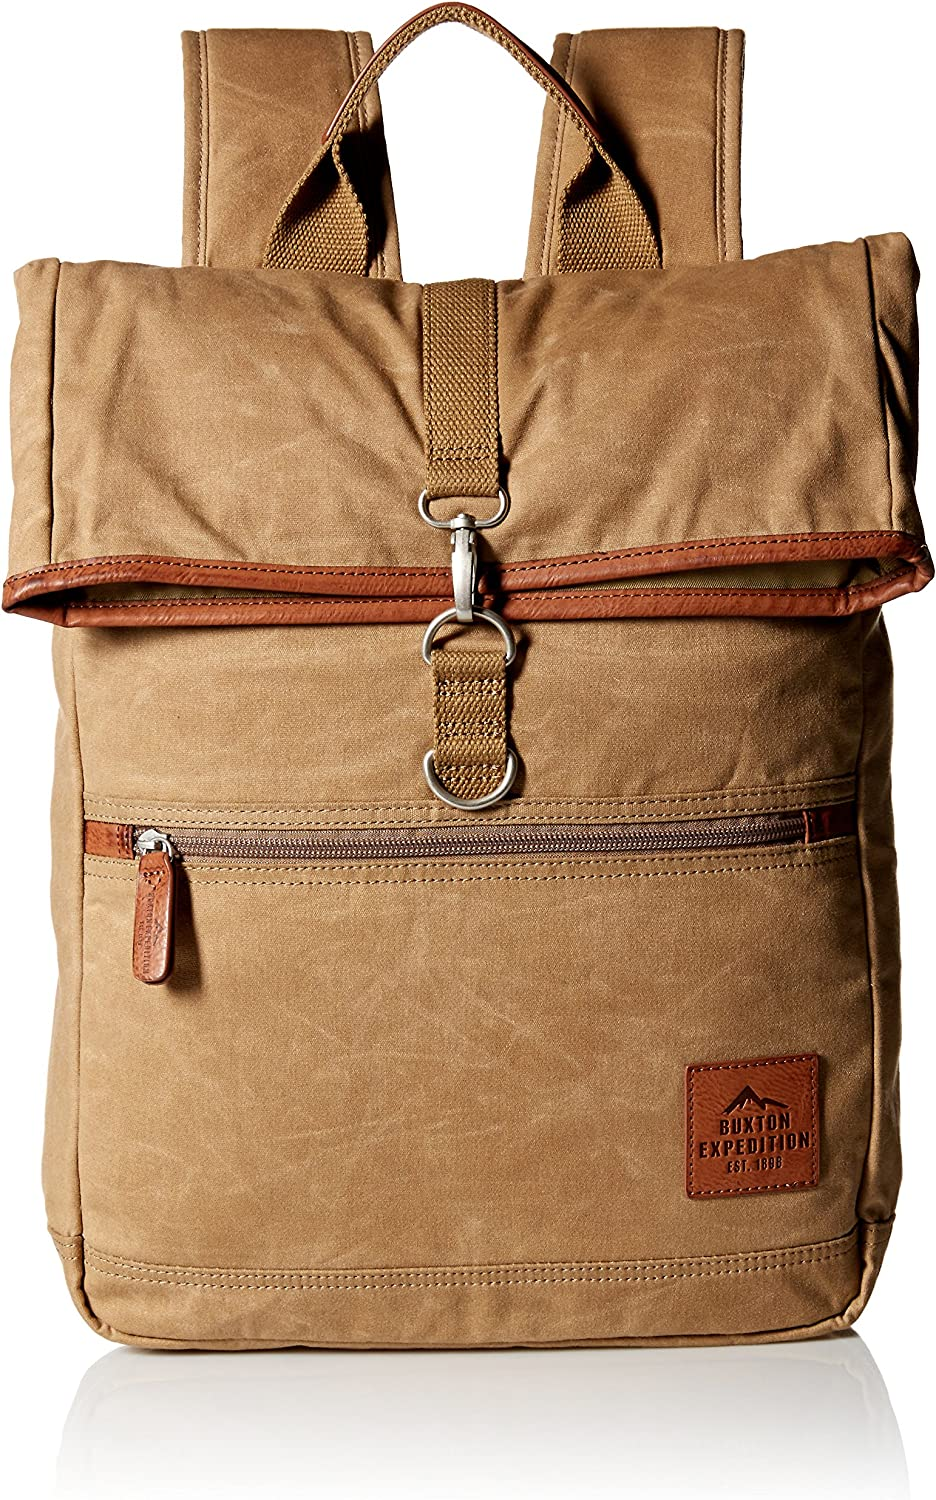 Buxton Men's Expedition Ii Huntington Gear Fold-Over Canvas Backpack, Tan, One Size